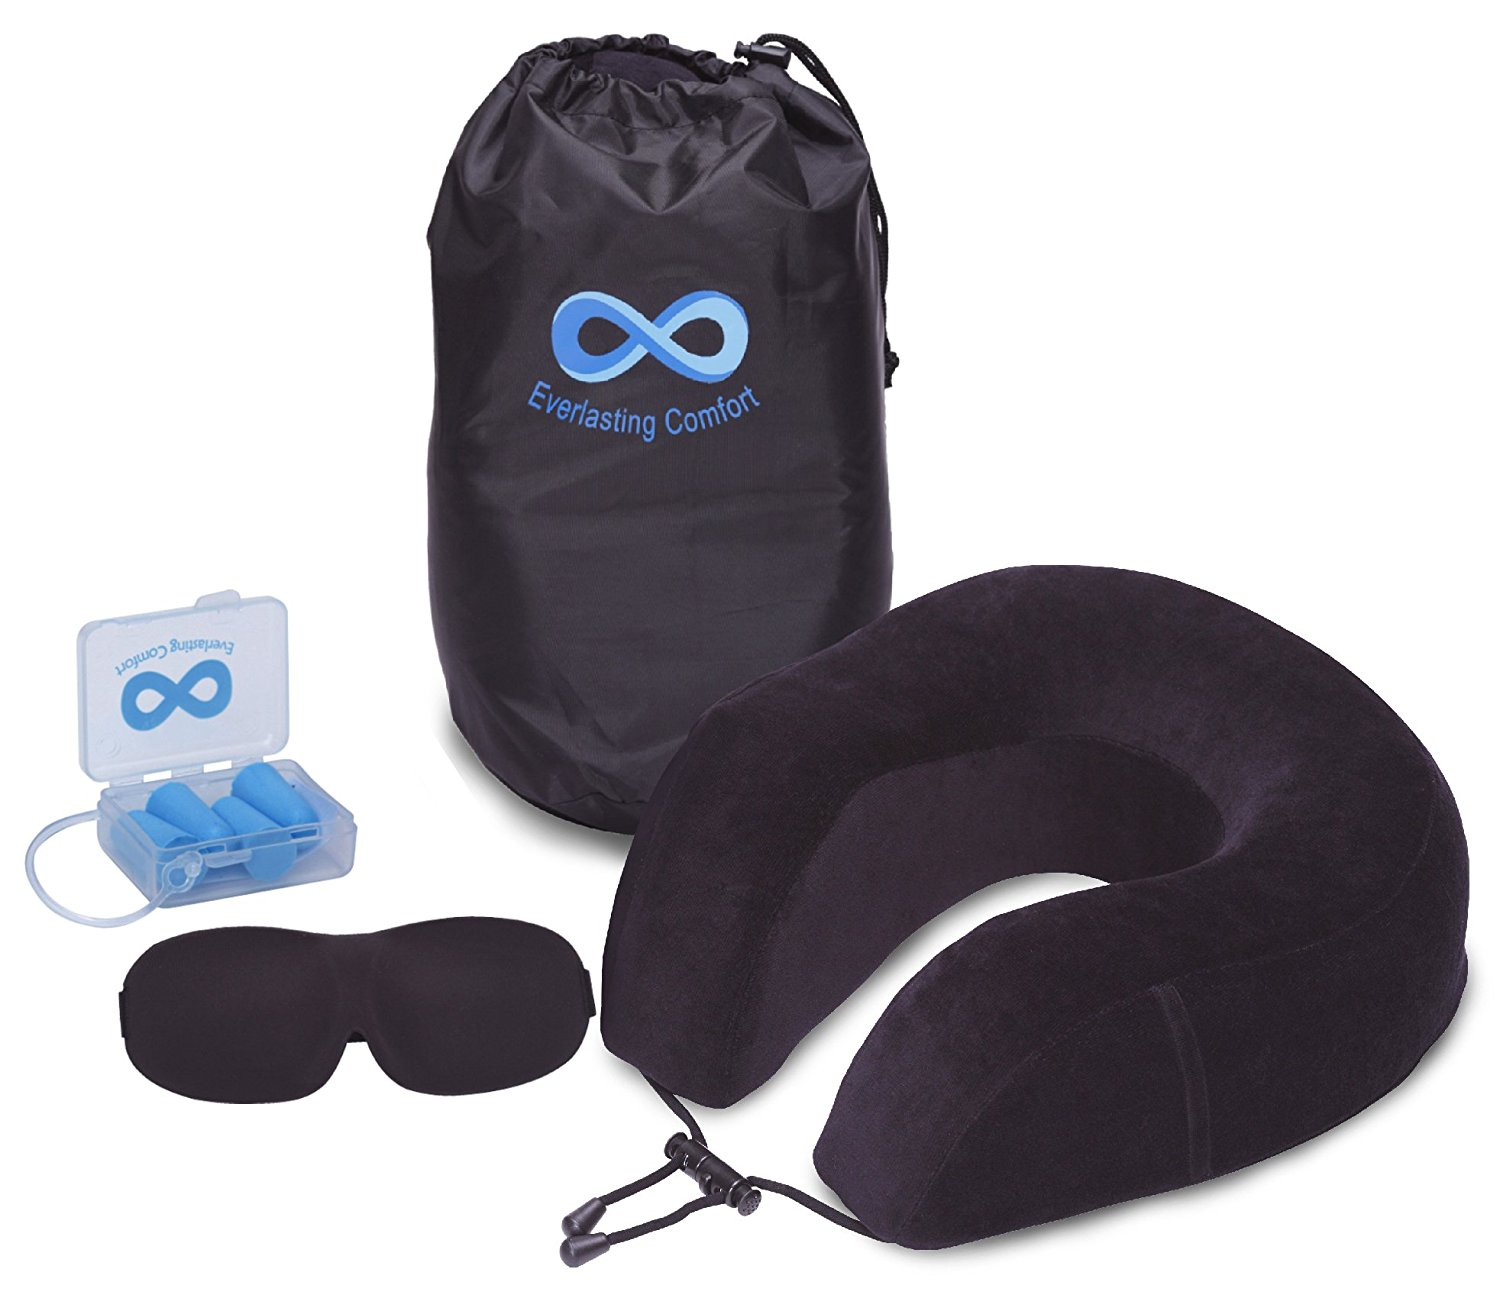 Matt Van Swol Sleep System on Planes, Travel Pillow